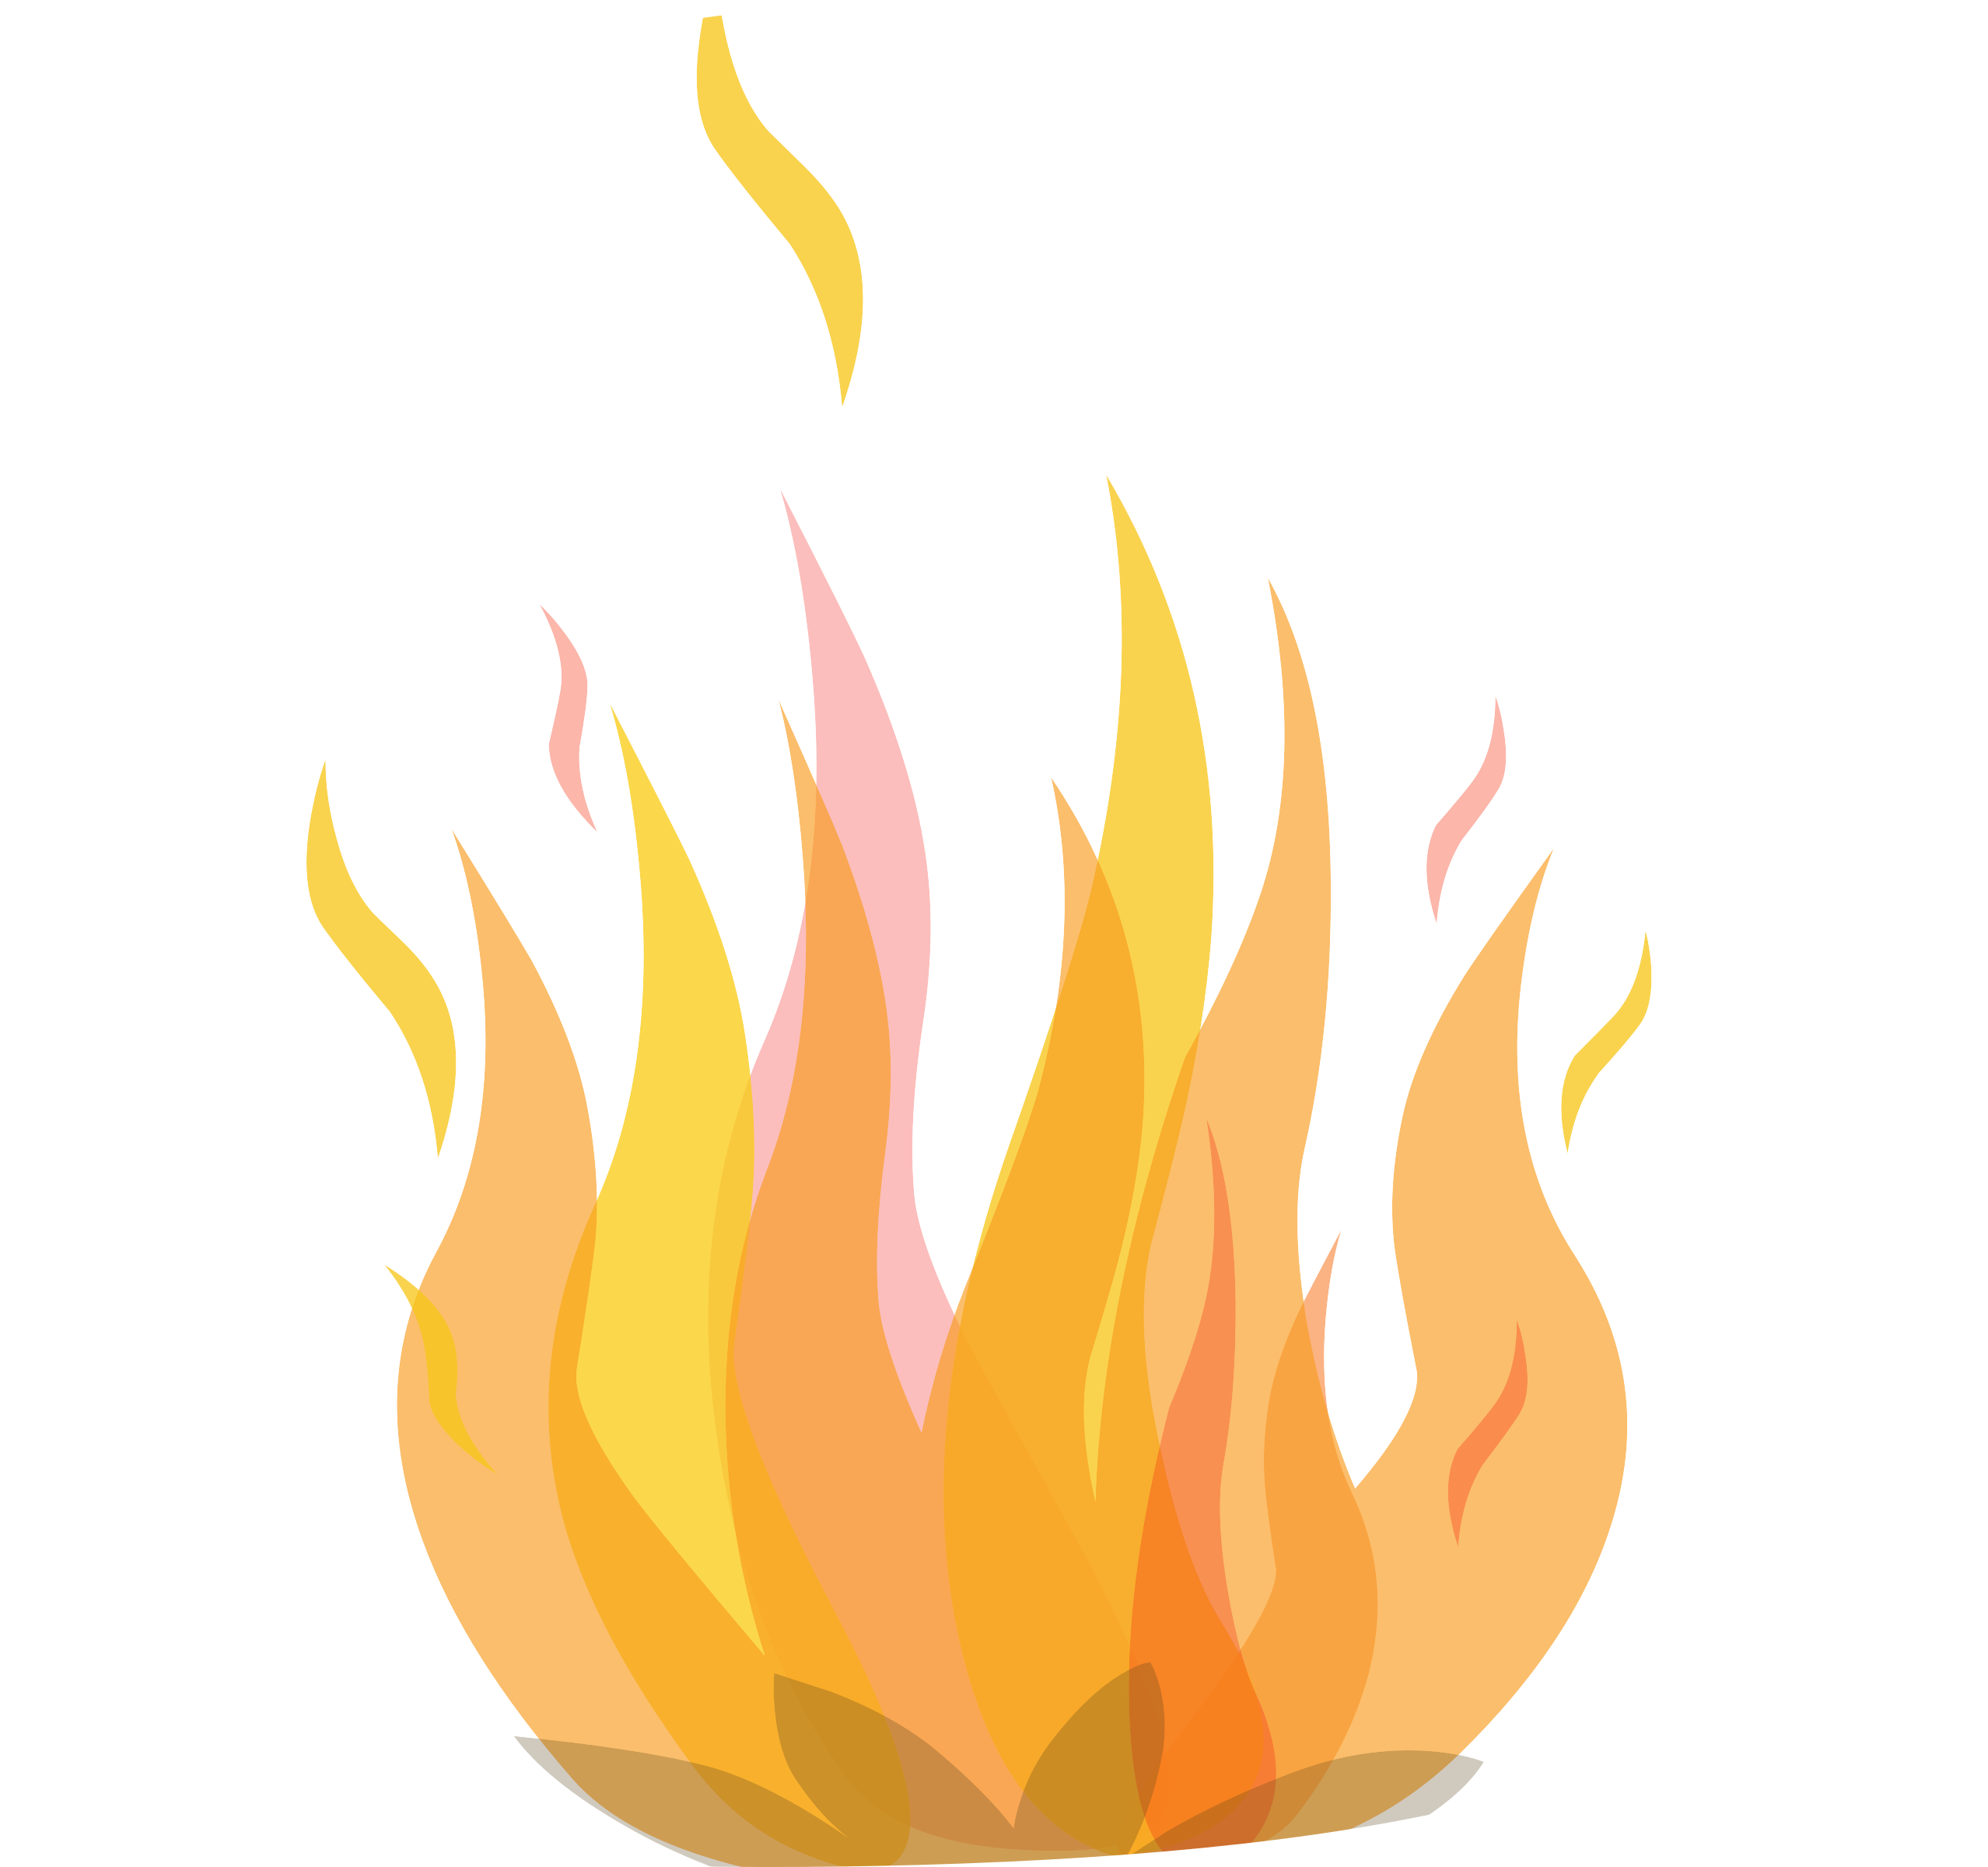 Clipart flames pdf. Images of ball fire